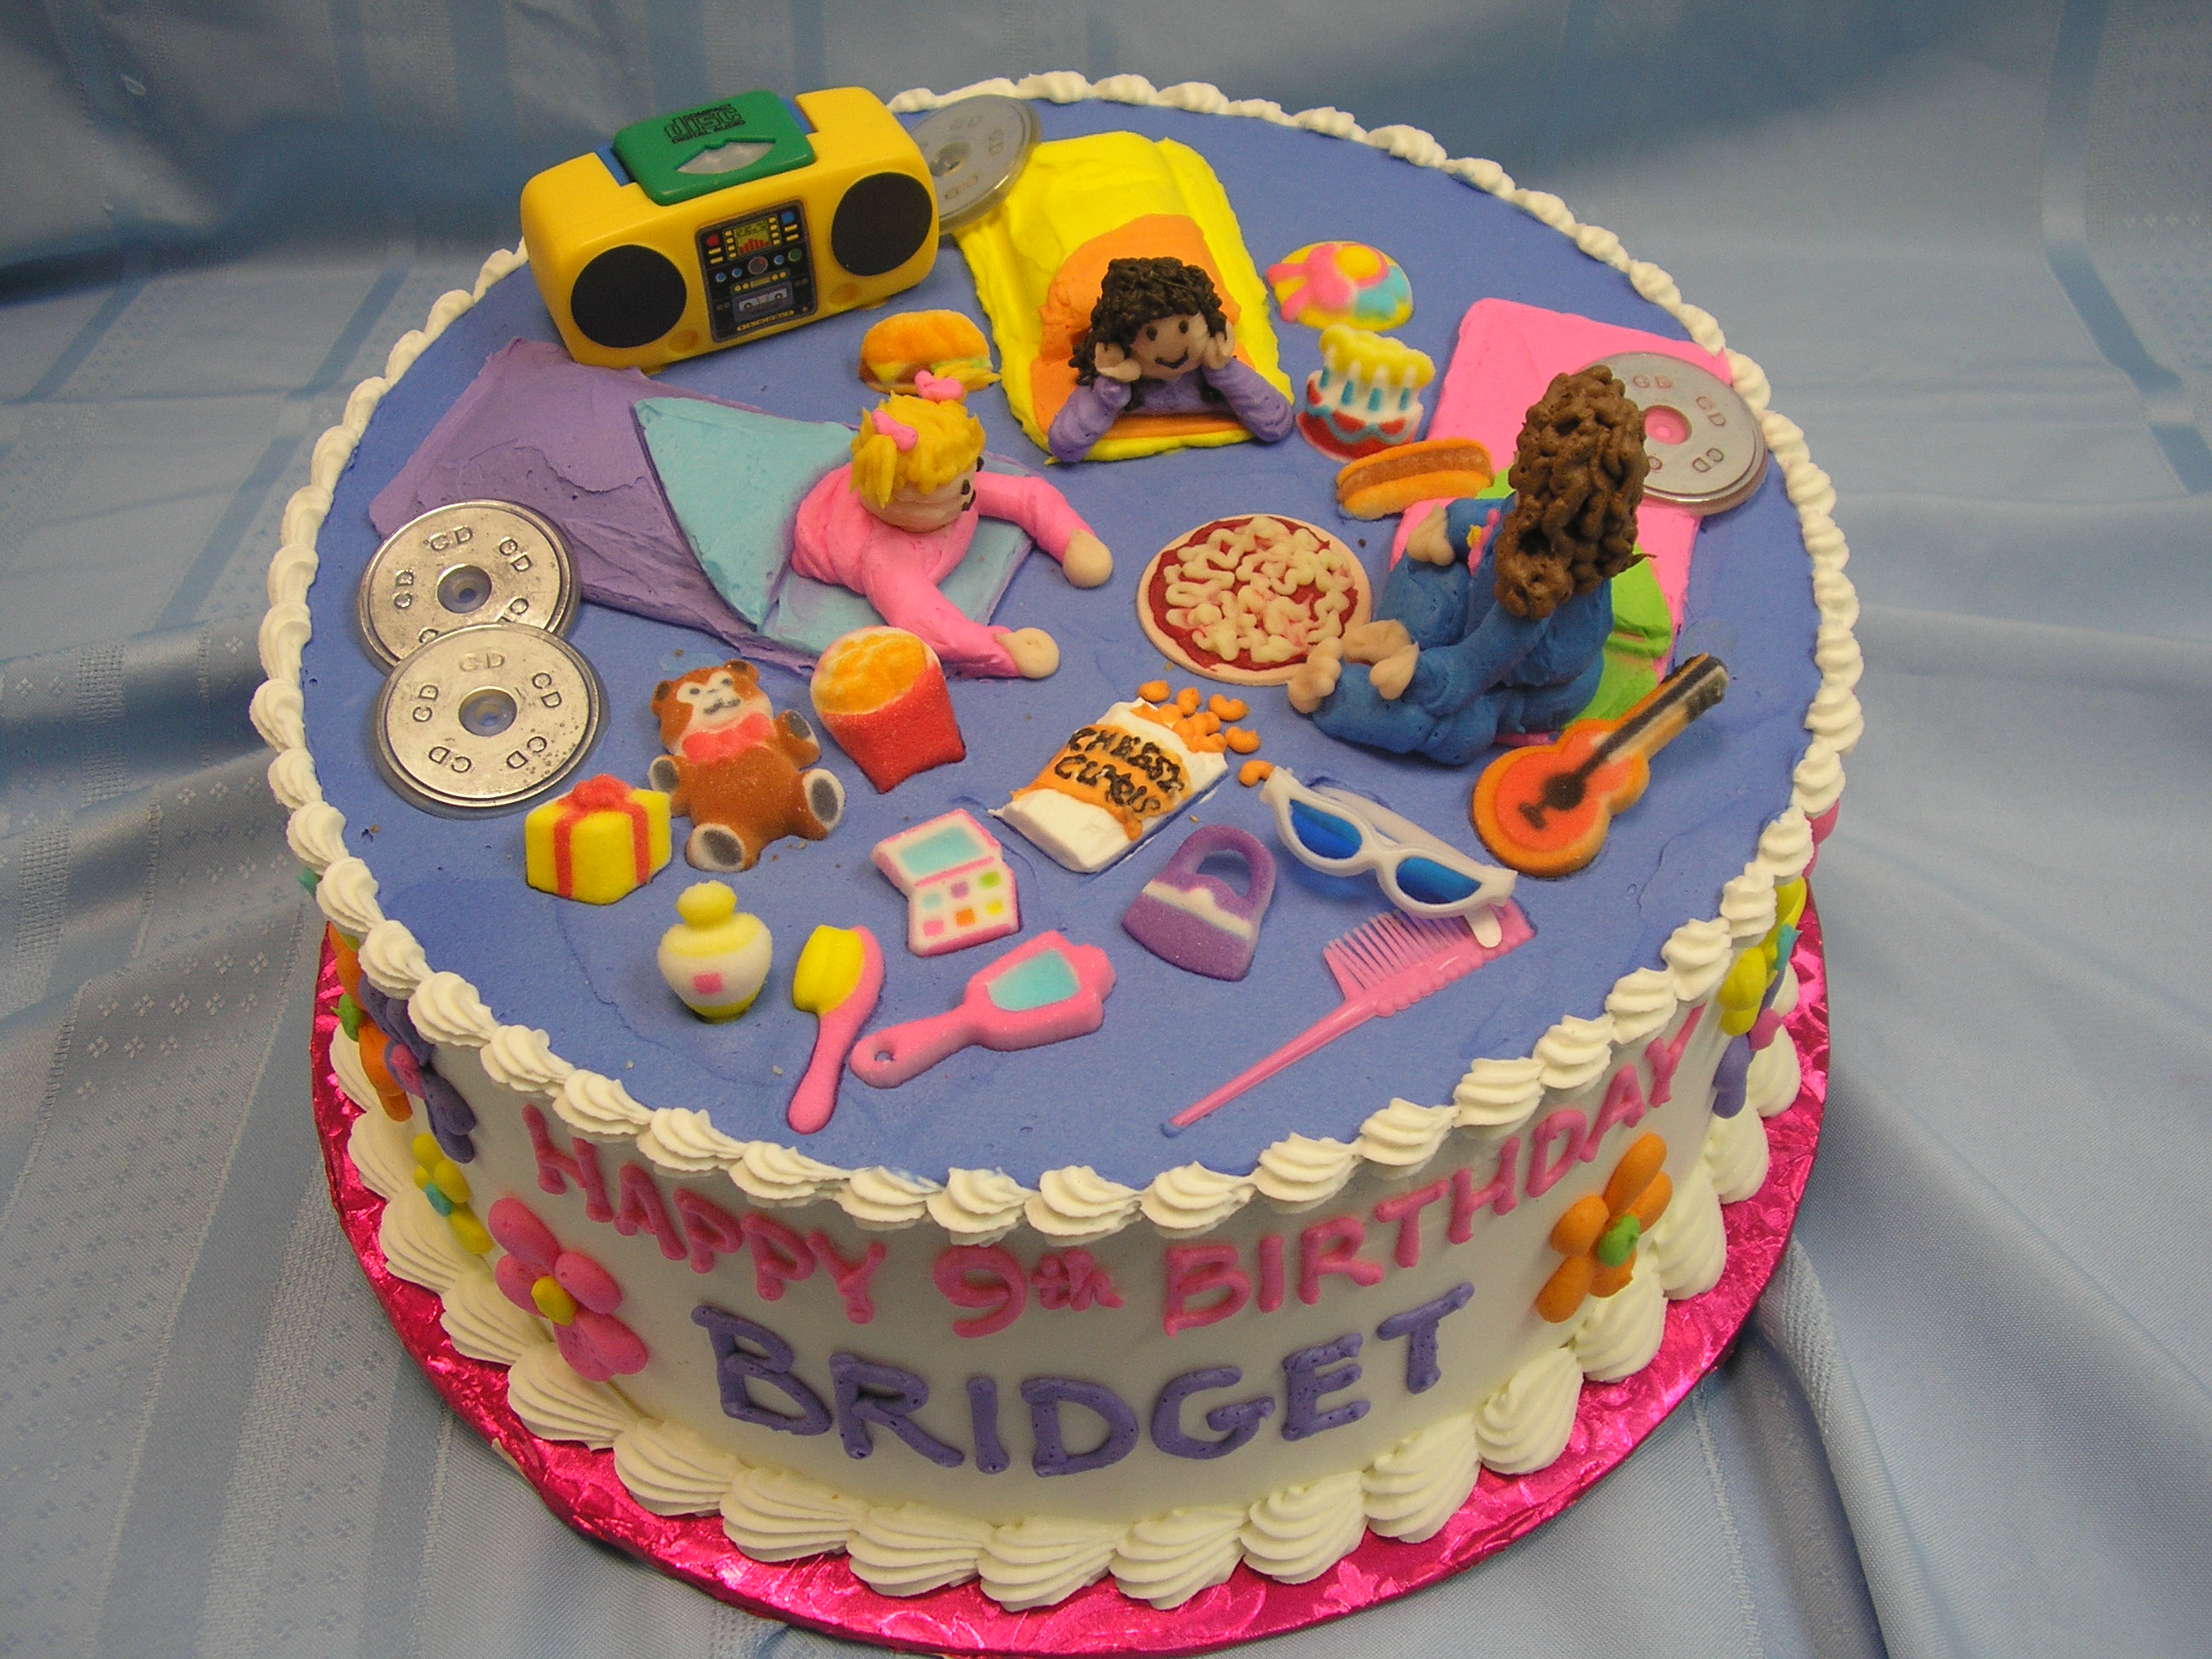 piped on sleepover theme cake